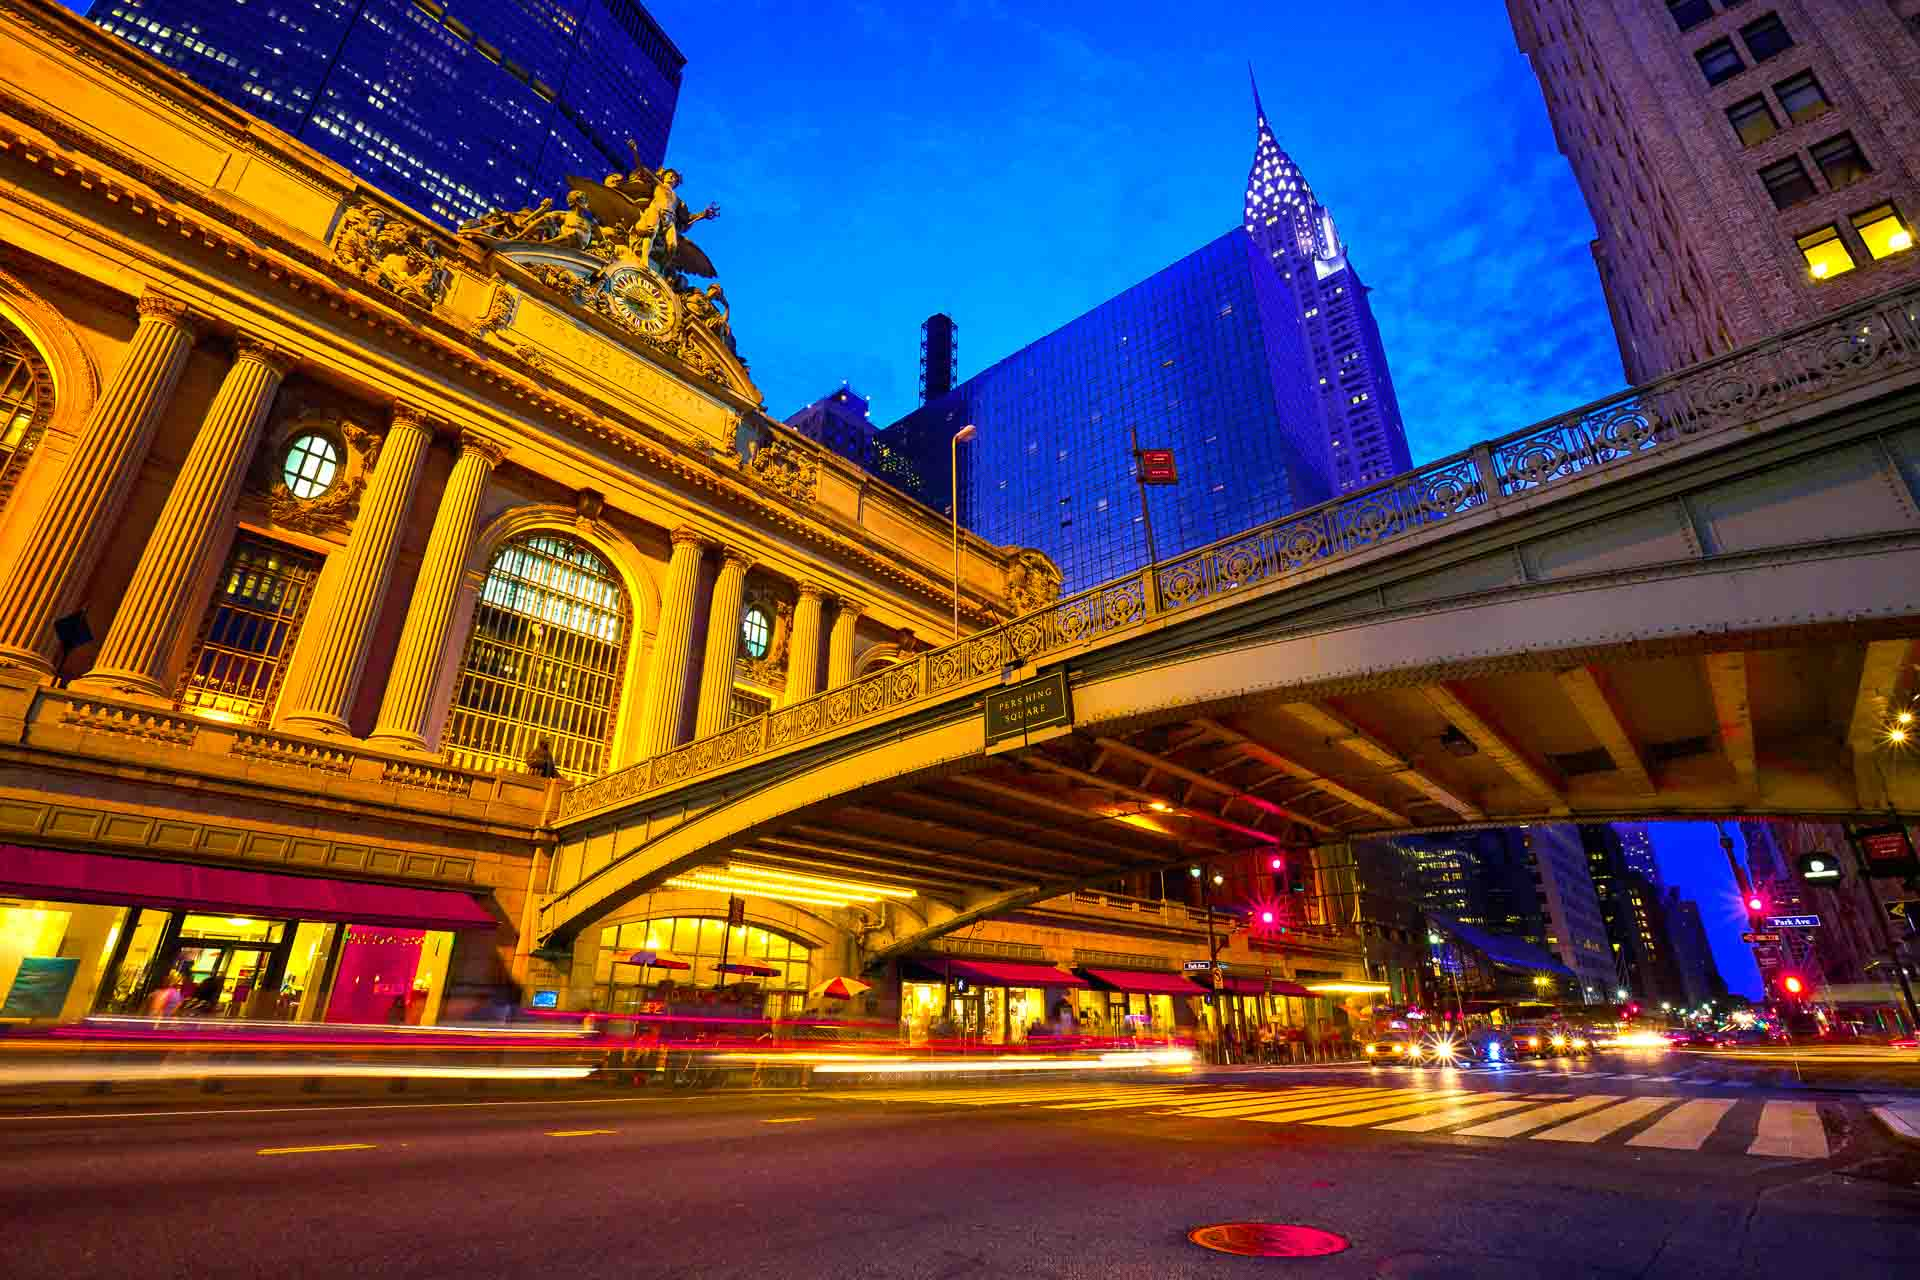 Pershing Square Overpass and entrance to Grand Central Terminal in New York City